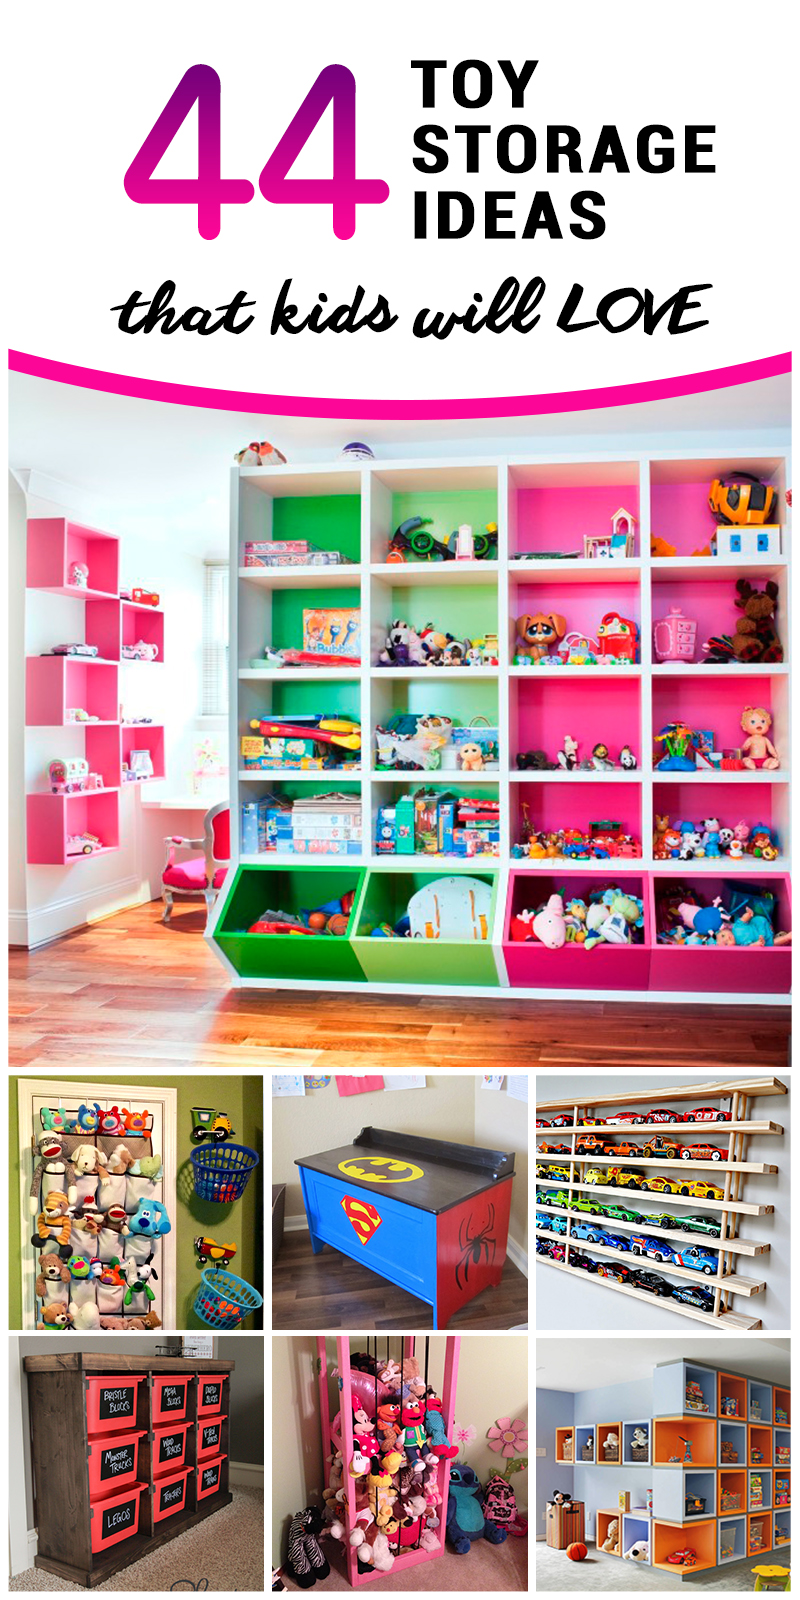 Marvelous Toy Storage Ideas For Kids